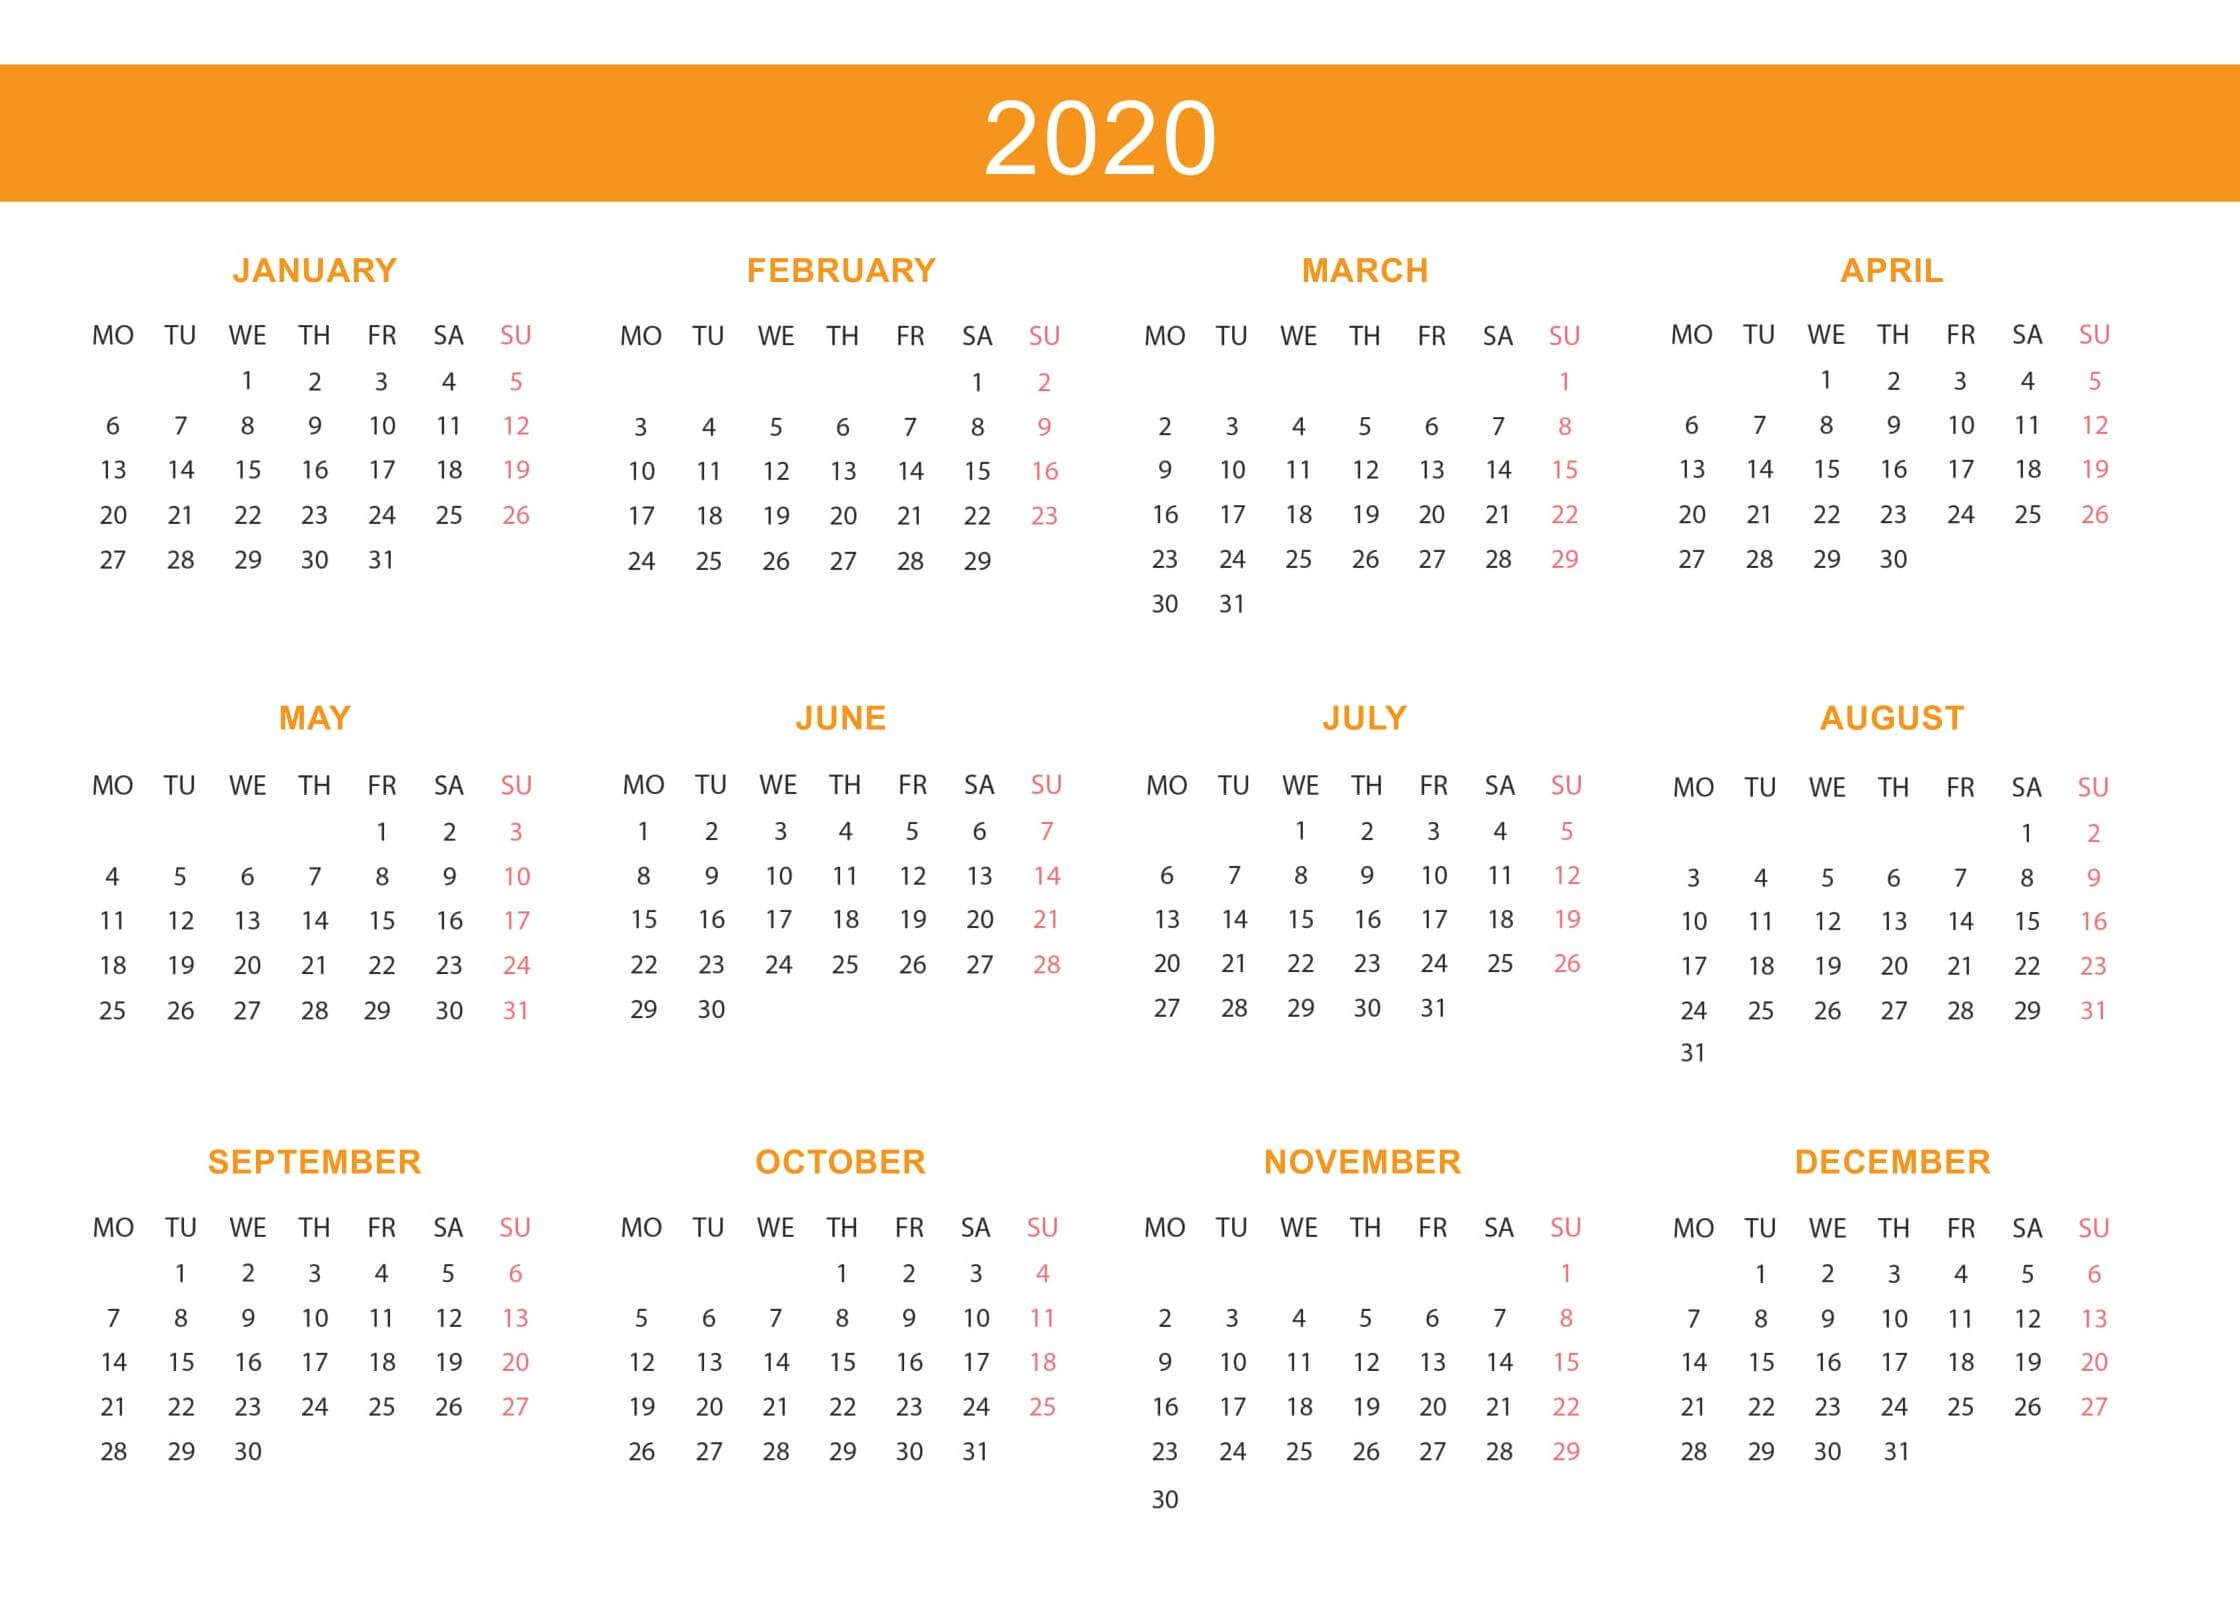 Free Yearly Calendar 2020 With Notes  2019 Calendars For intended for School Calendar 2020 South Africa Pdf